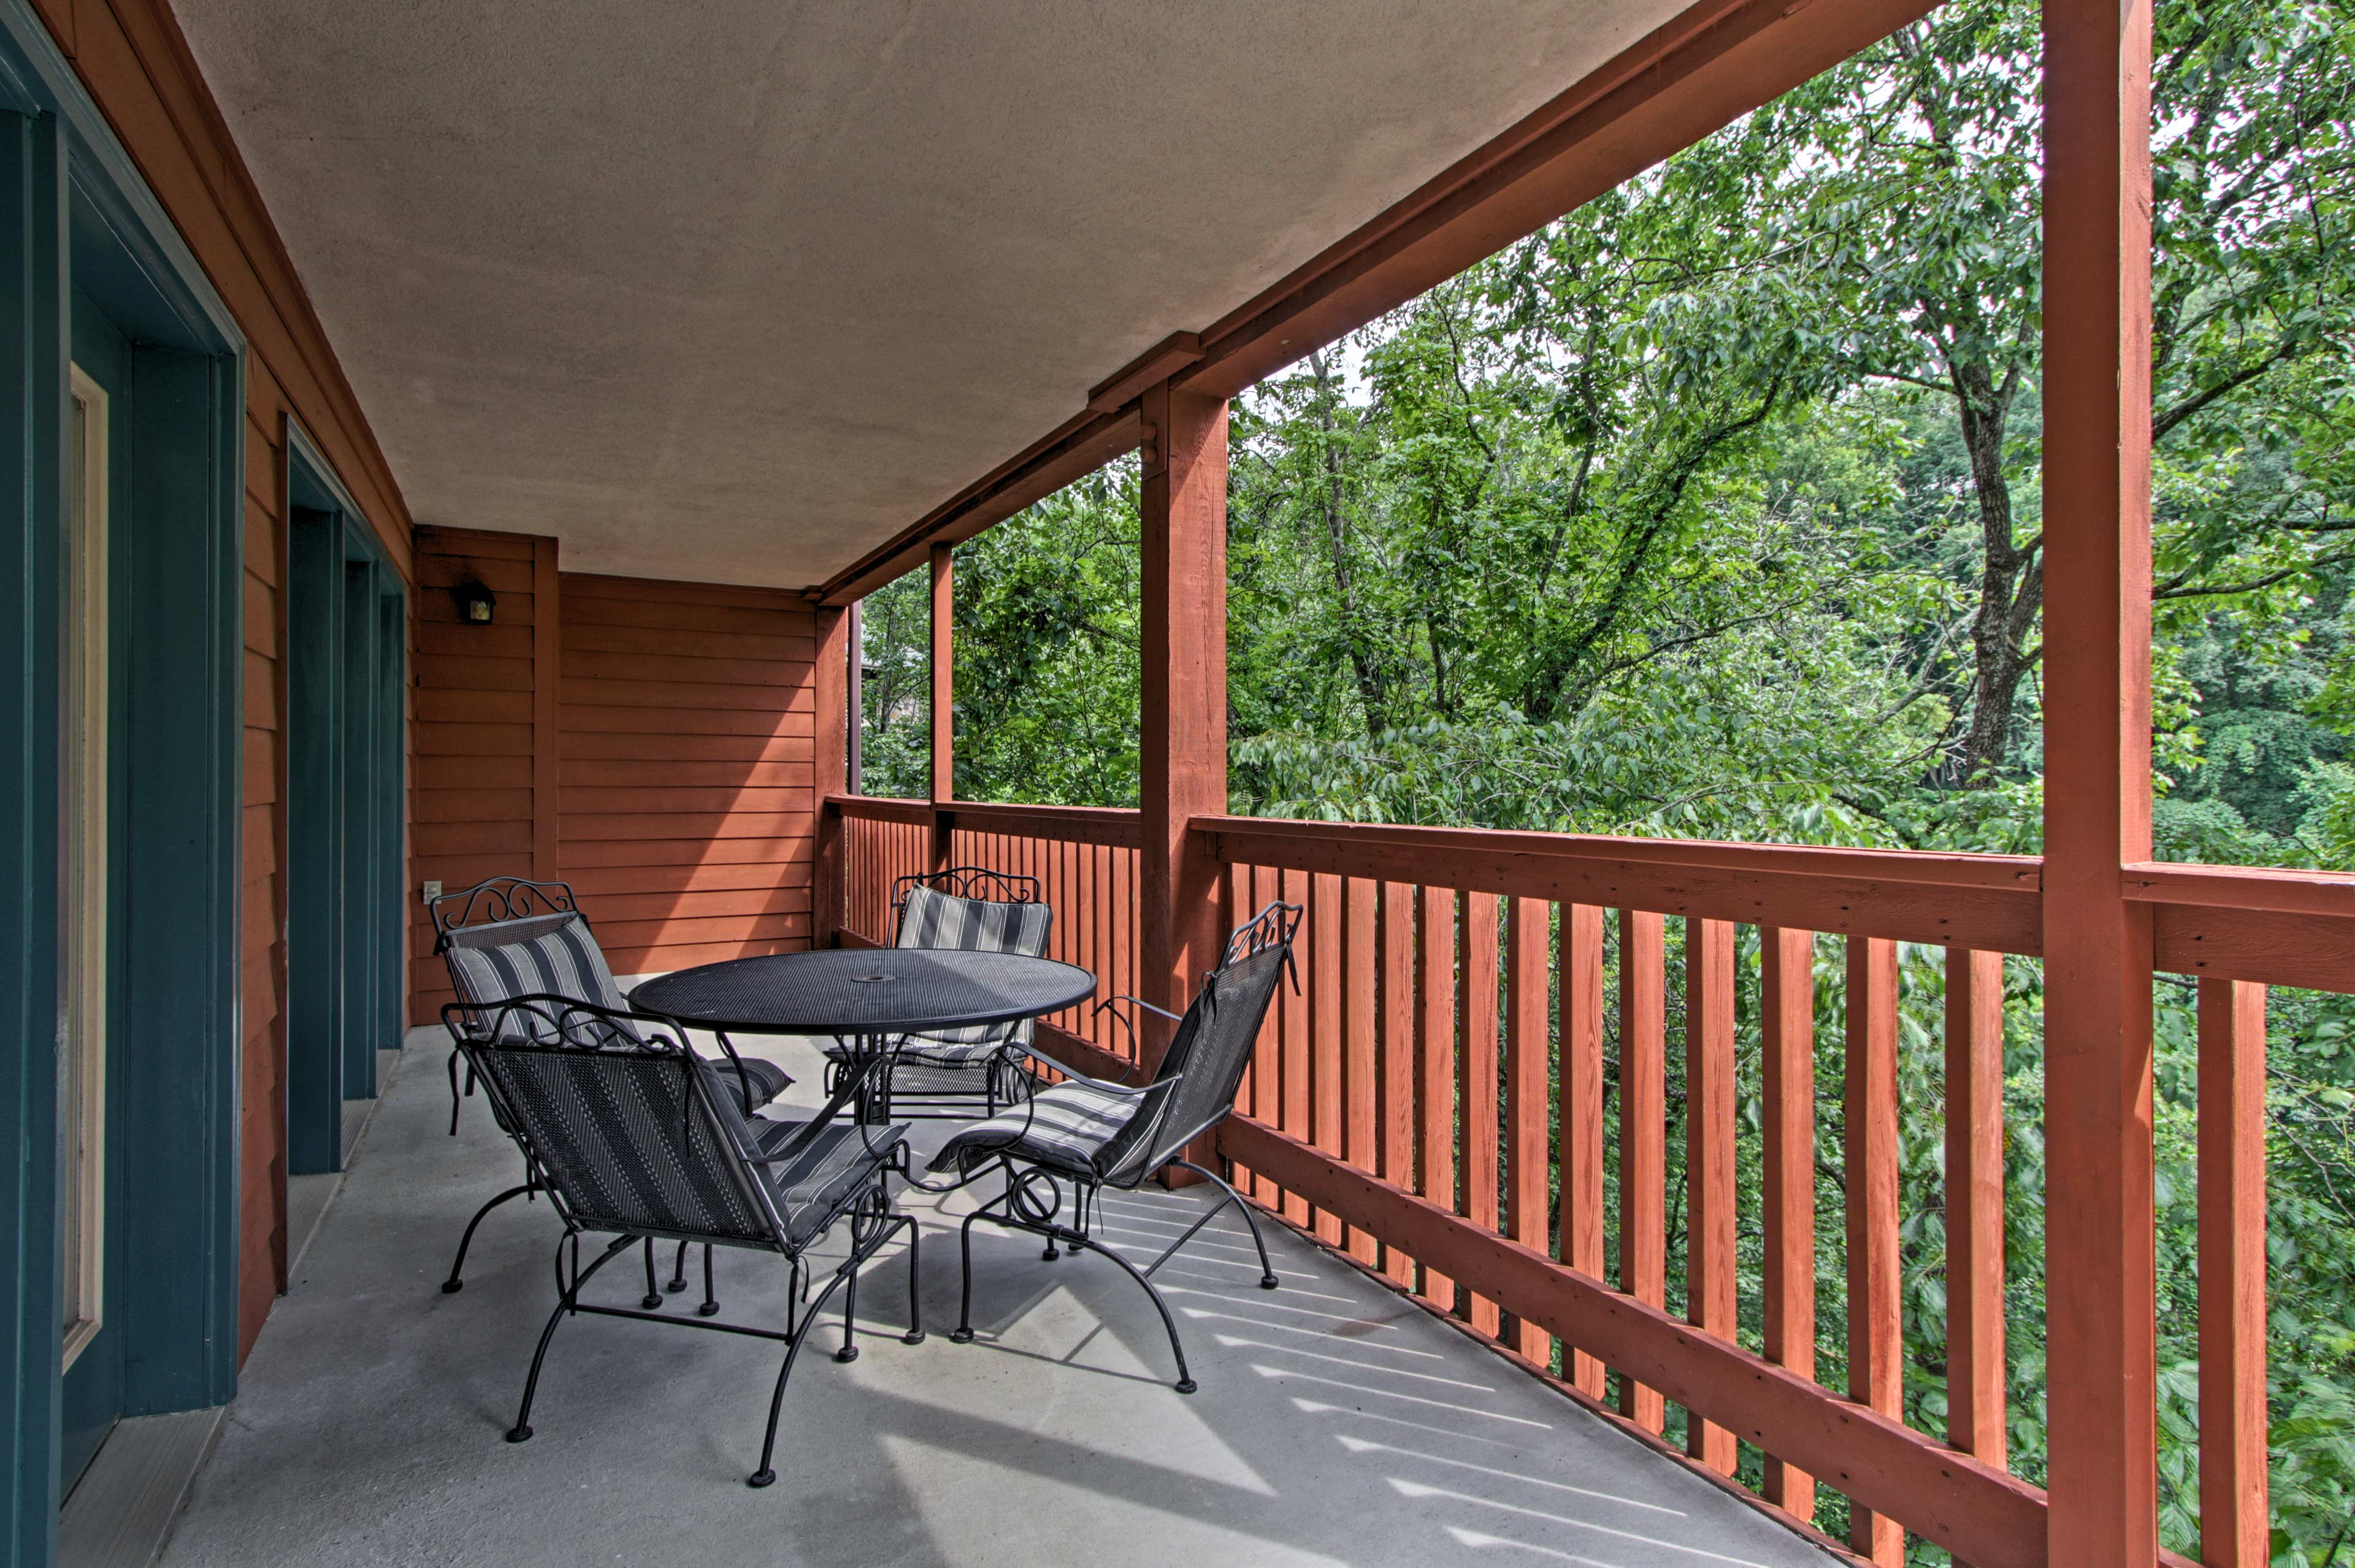 Relish your time spent together outside playing cards and sipping beverages.